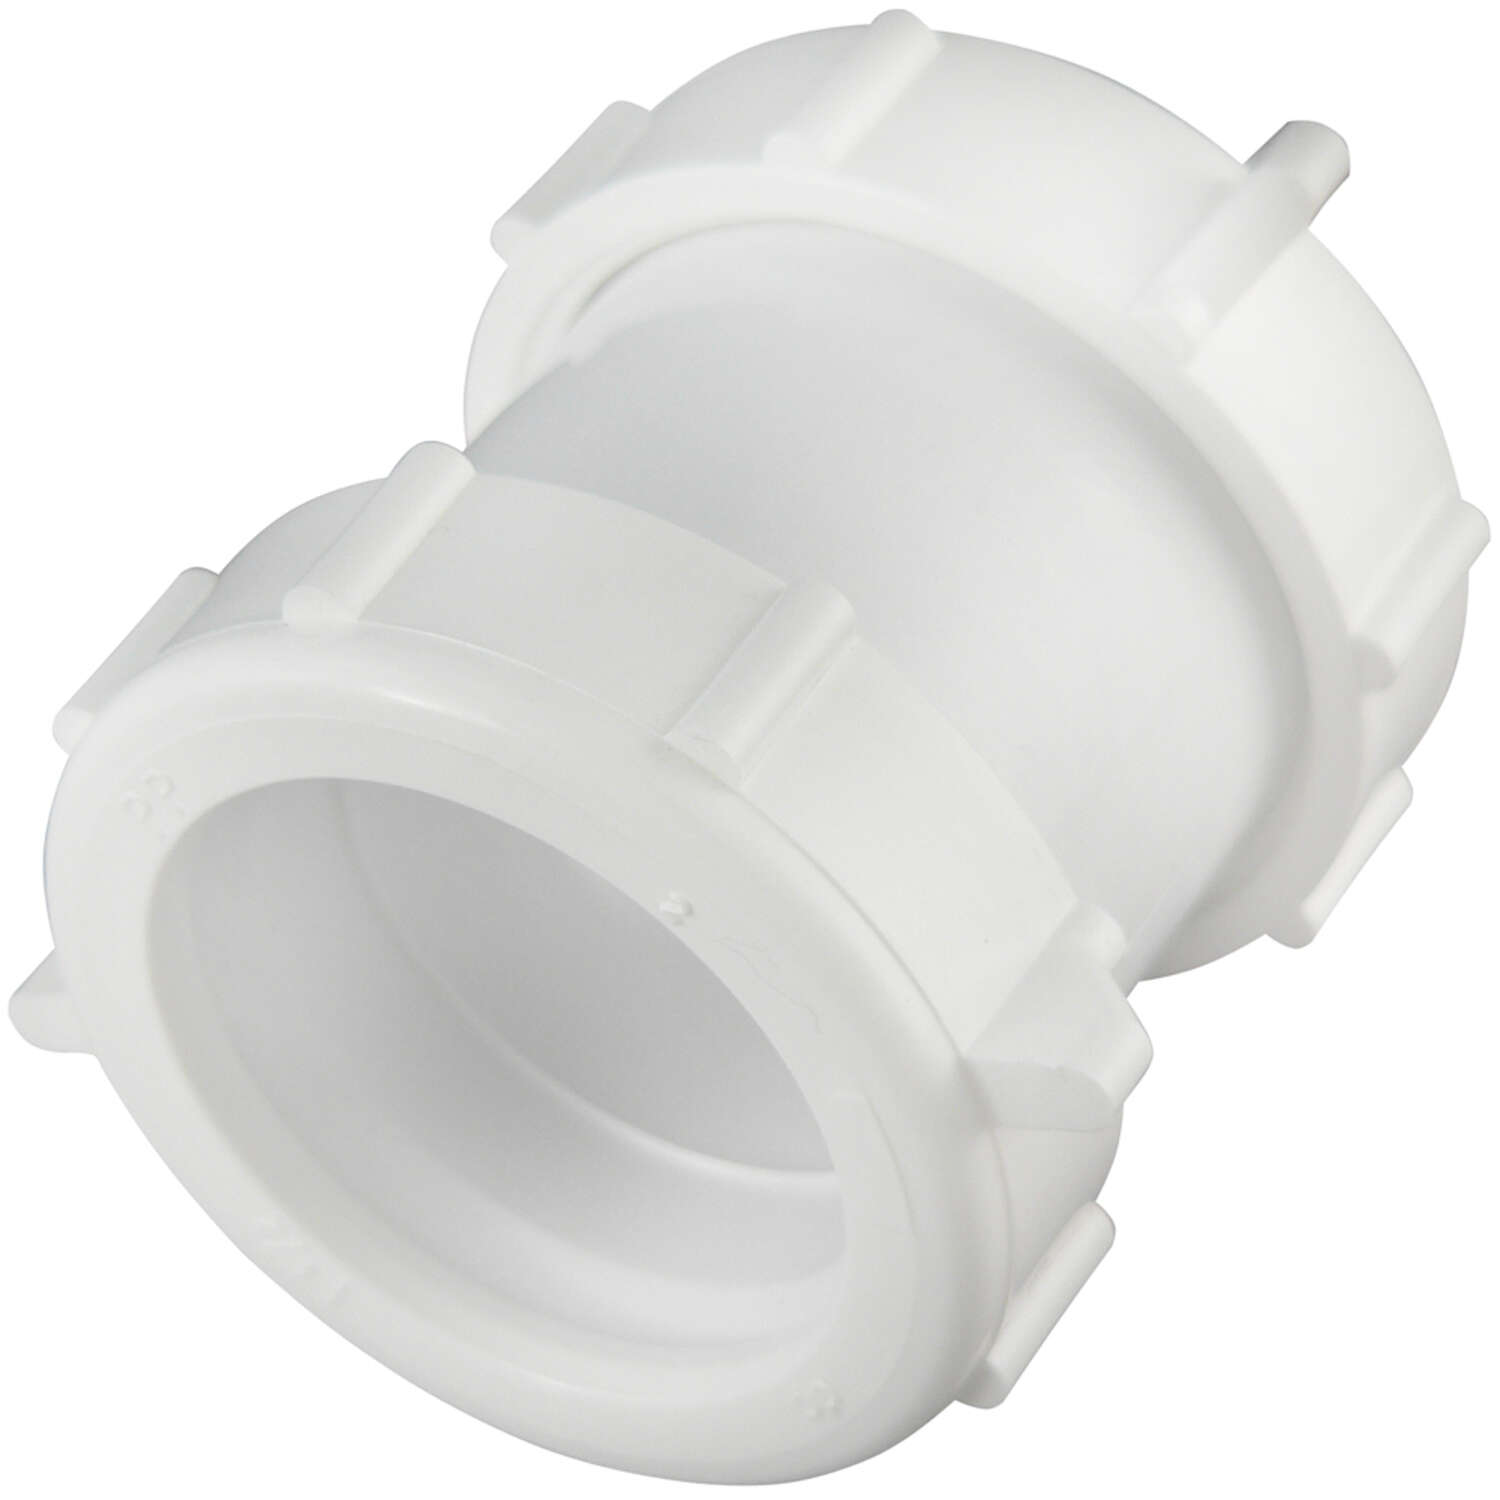 Plumb Pak  1-1/2 in. Dia. x 6.13 in. L Plastic  Straight Extension Coupling